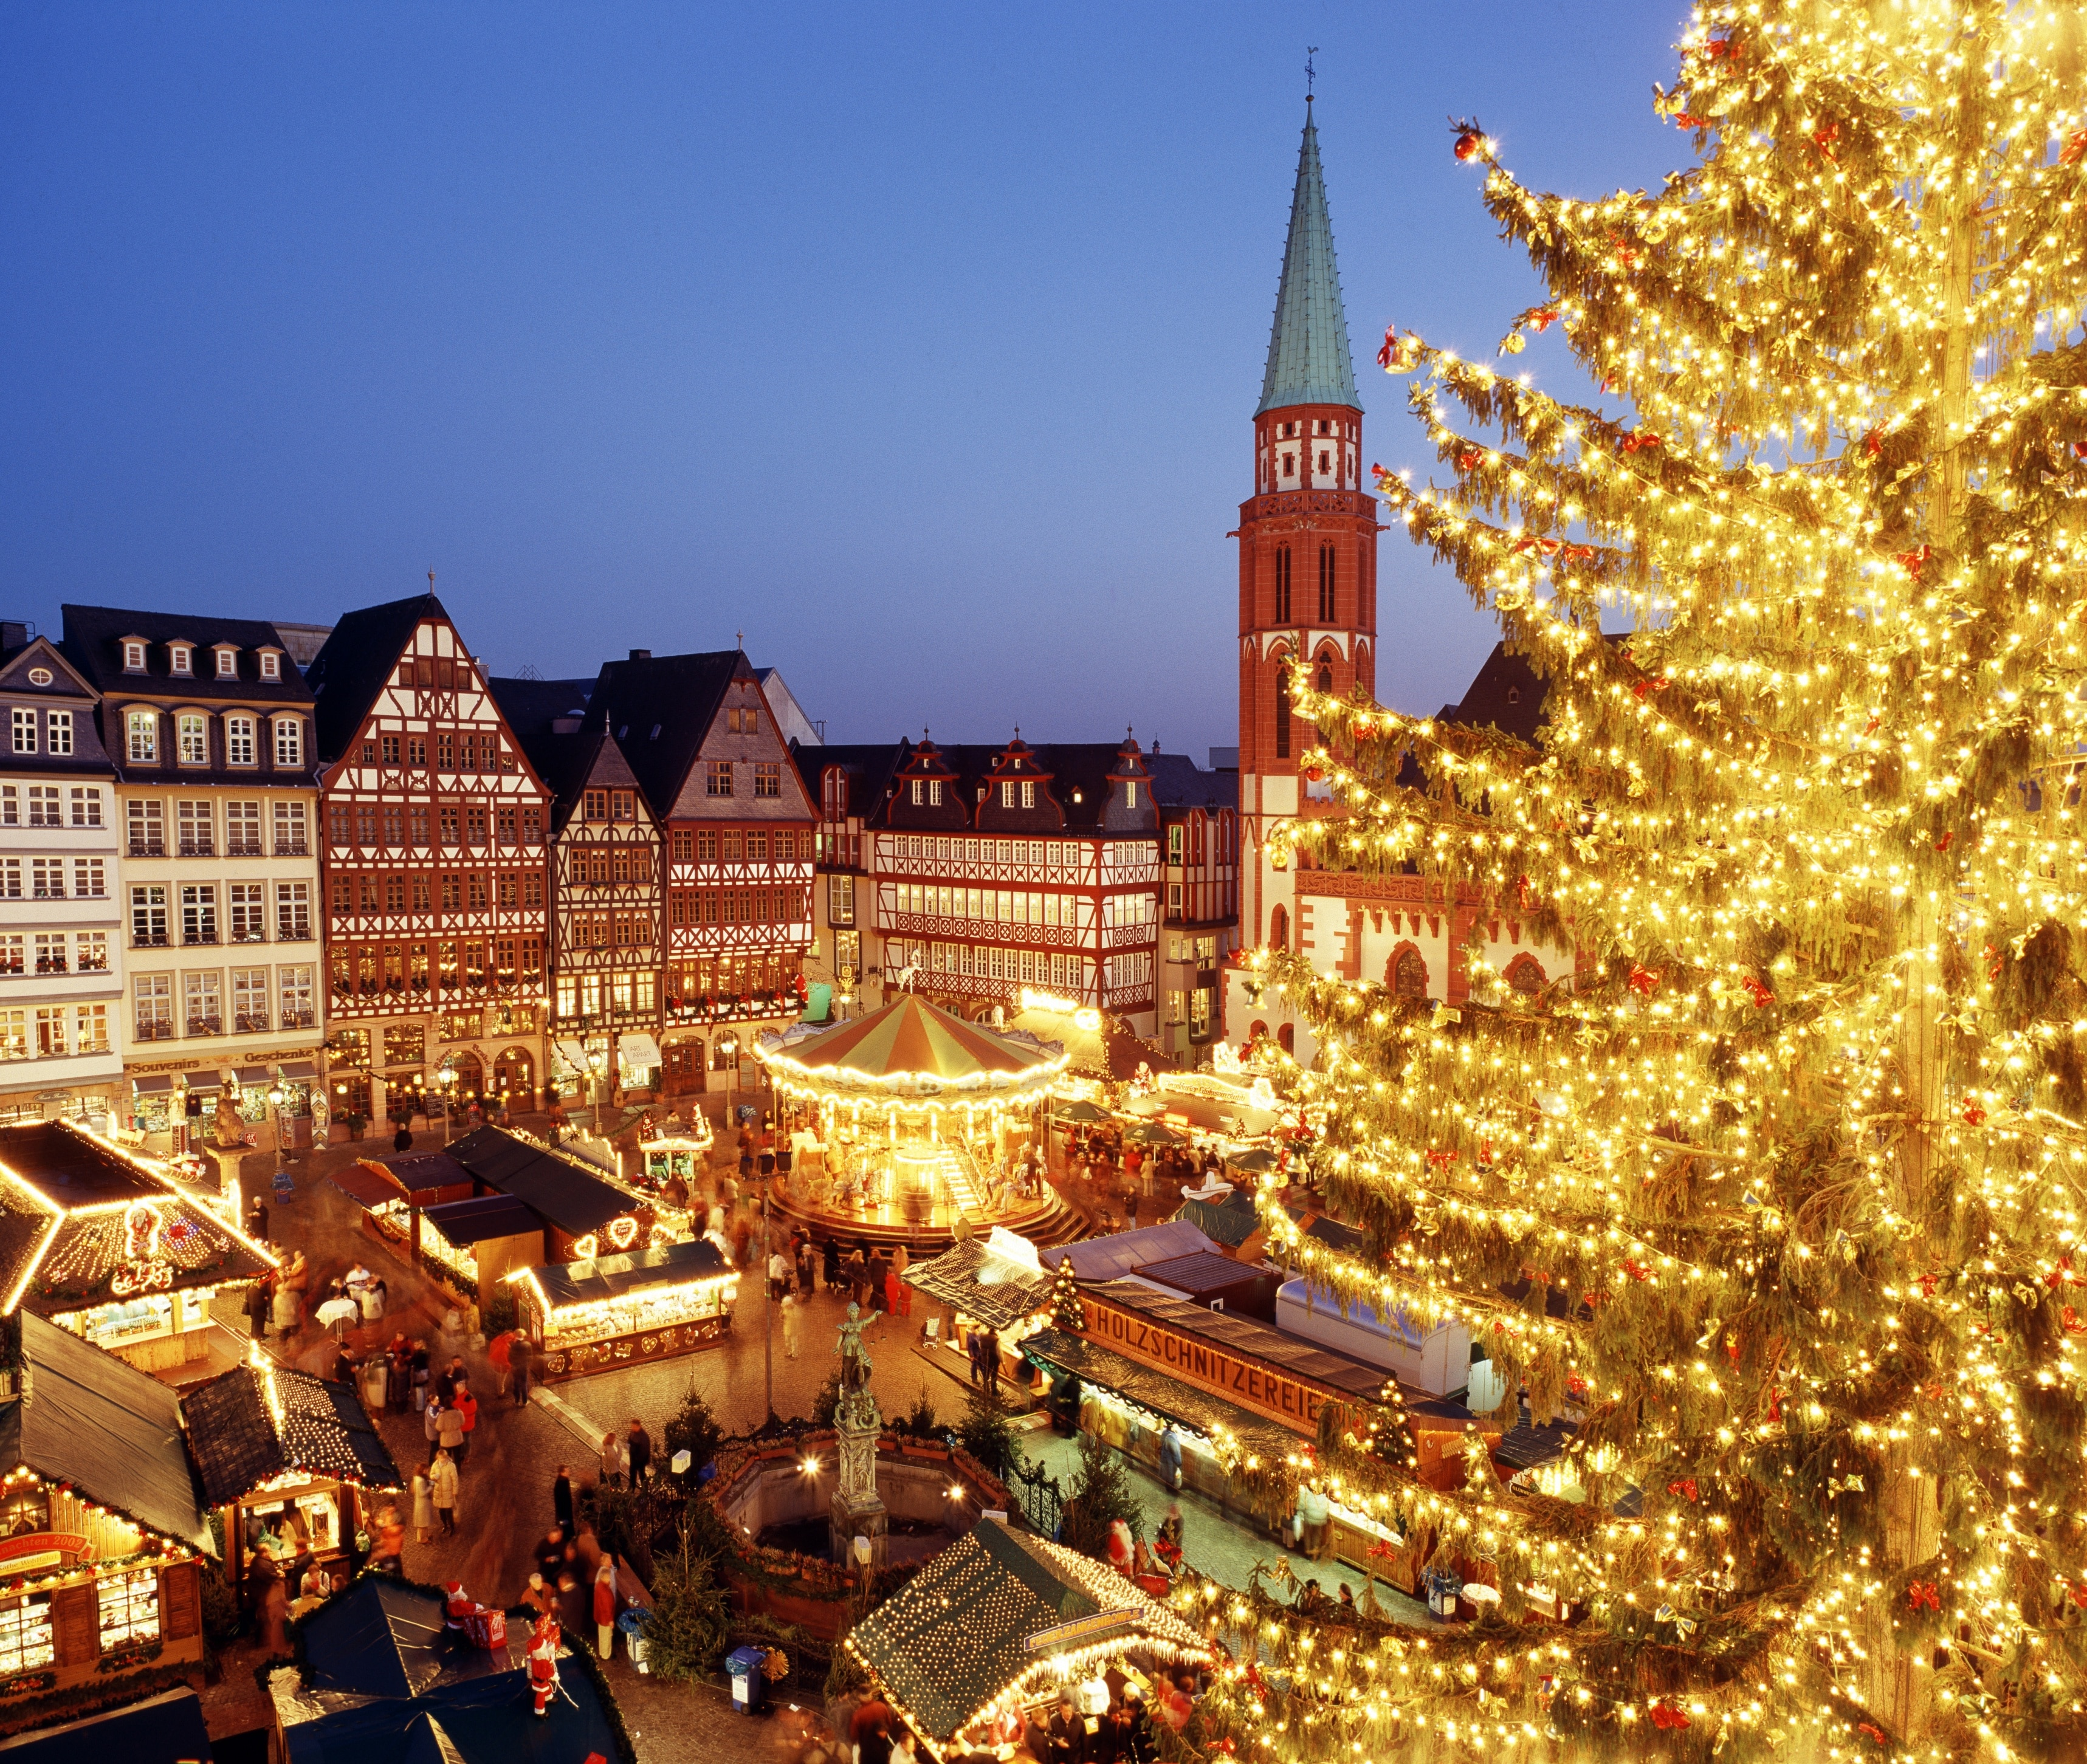 You can find the perfect gifts to bring home at Frankfurt Christmas Market during your stay in Frankfurt. Experience the fascinating museums or attend a sporting event in this vibrant area.